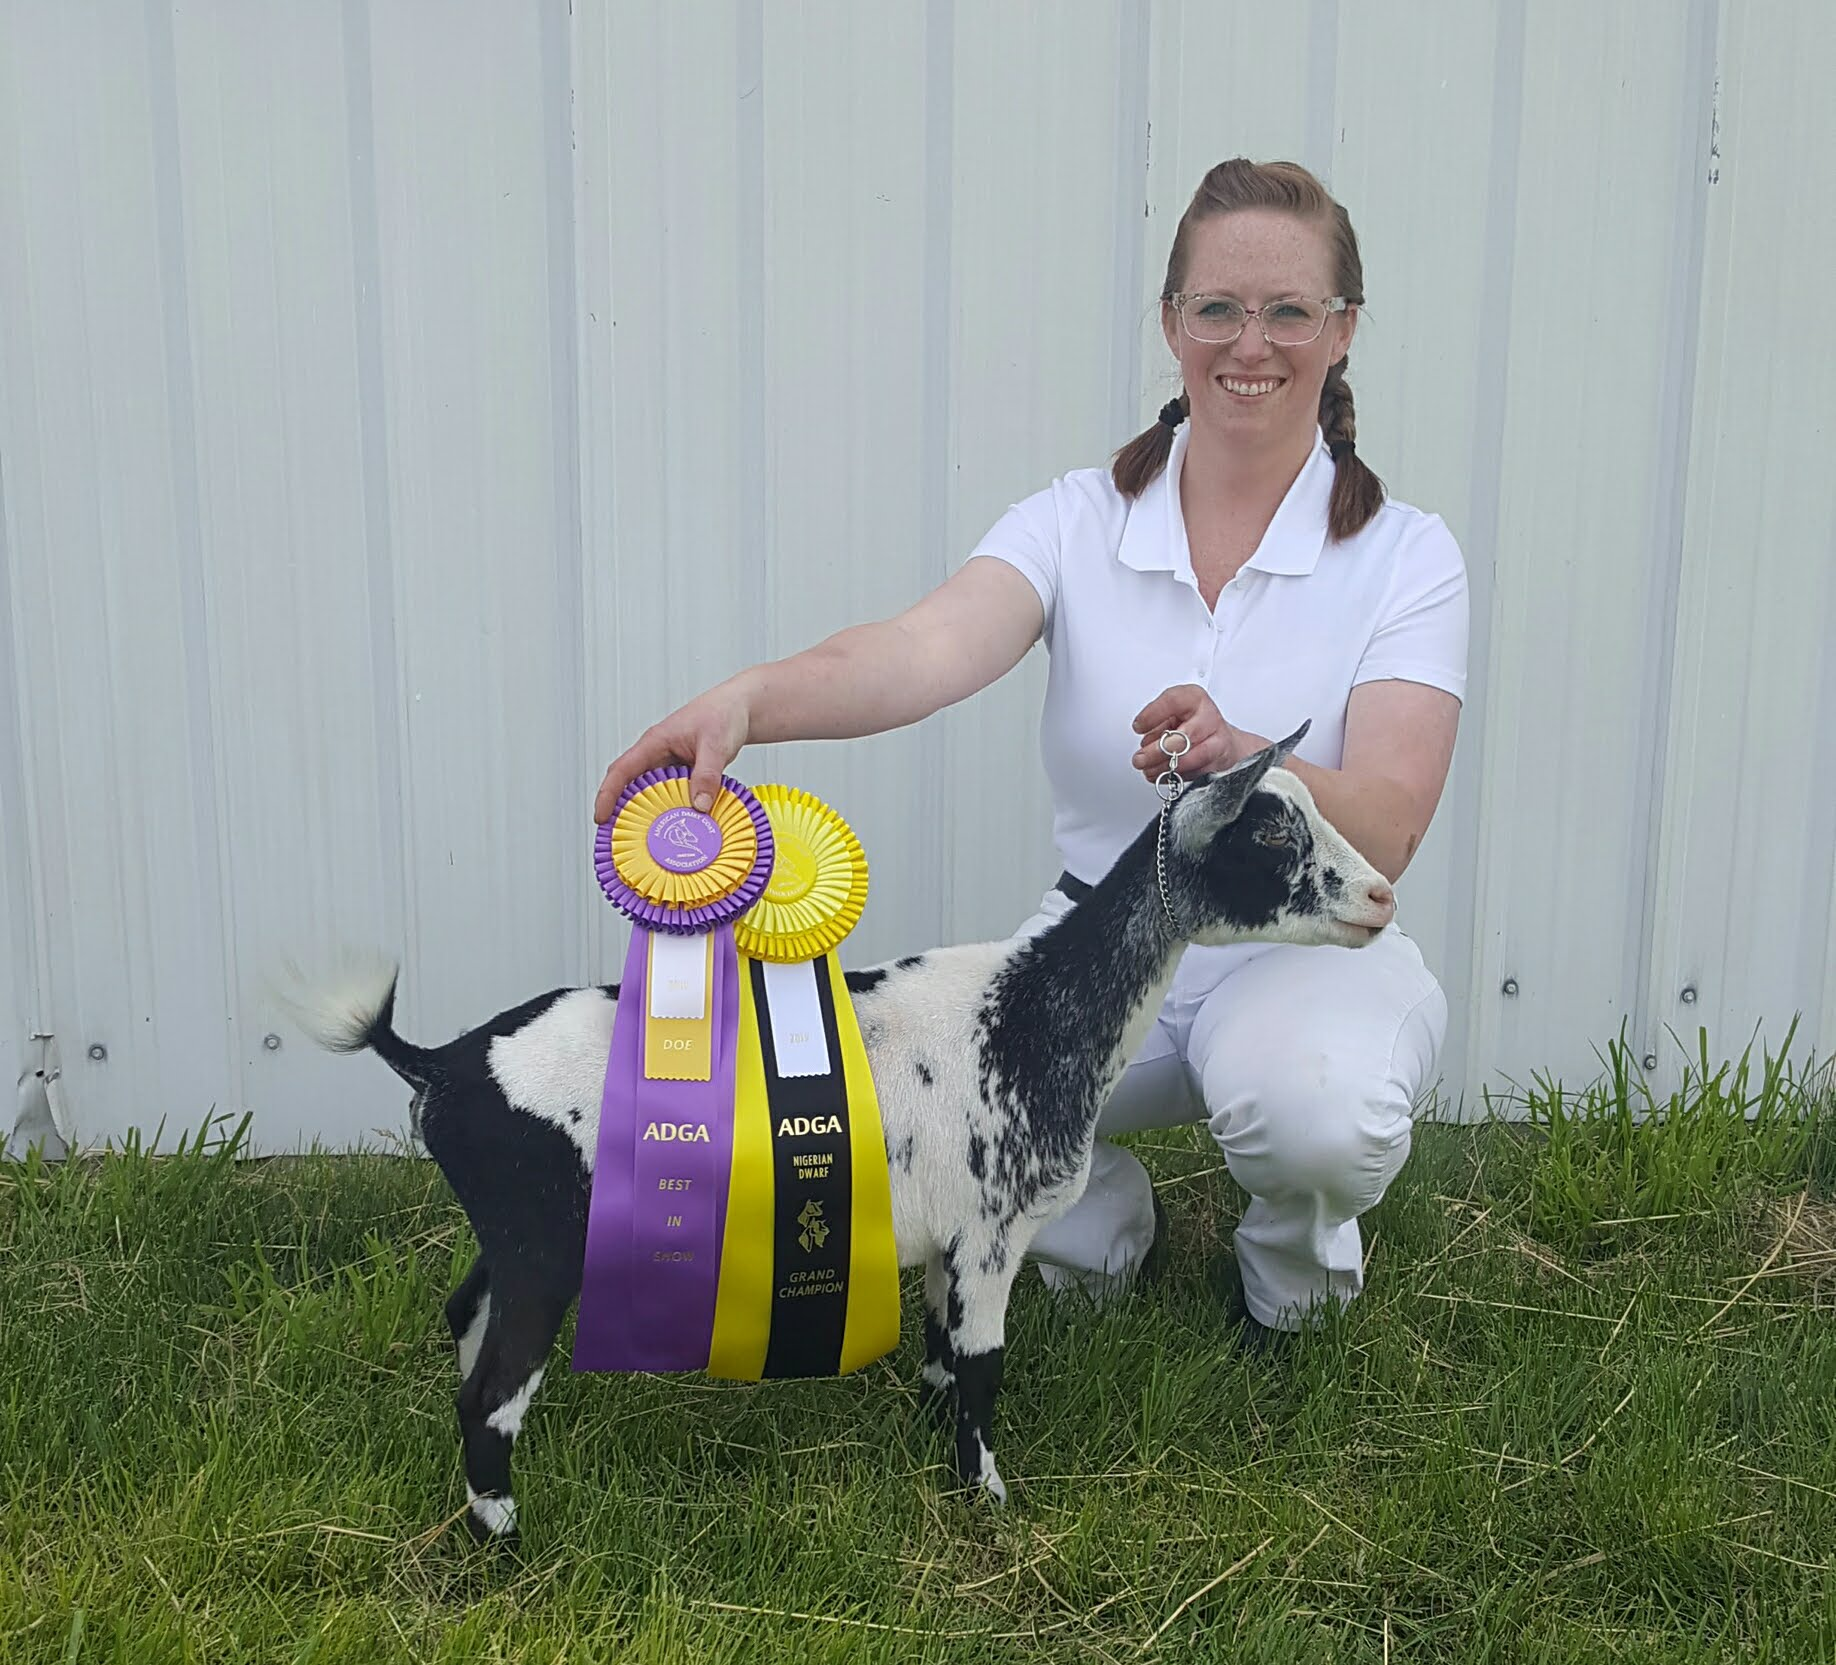 June 22, 2019 Bitterroot Dairy Goat Association 3rd annual ADGA show